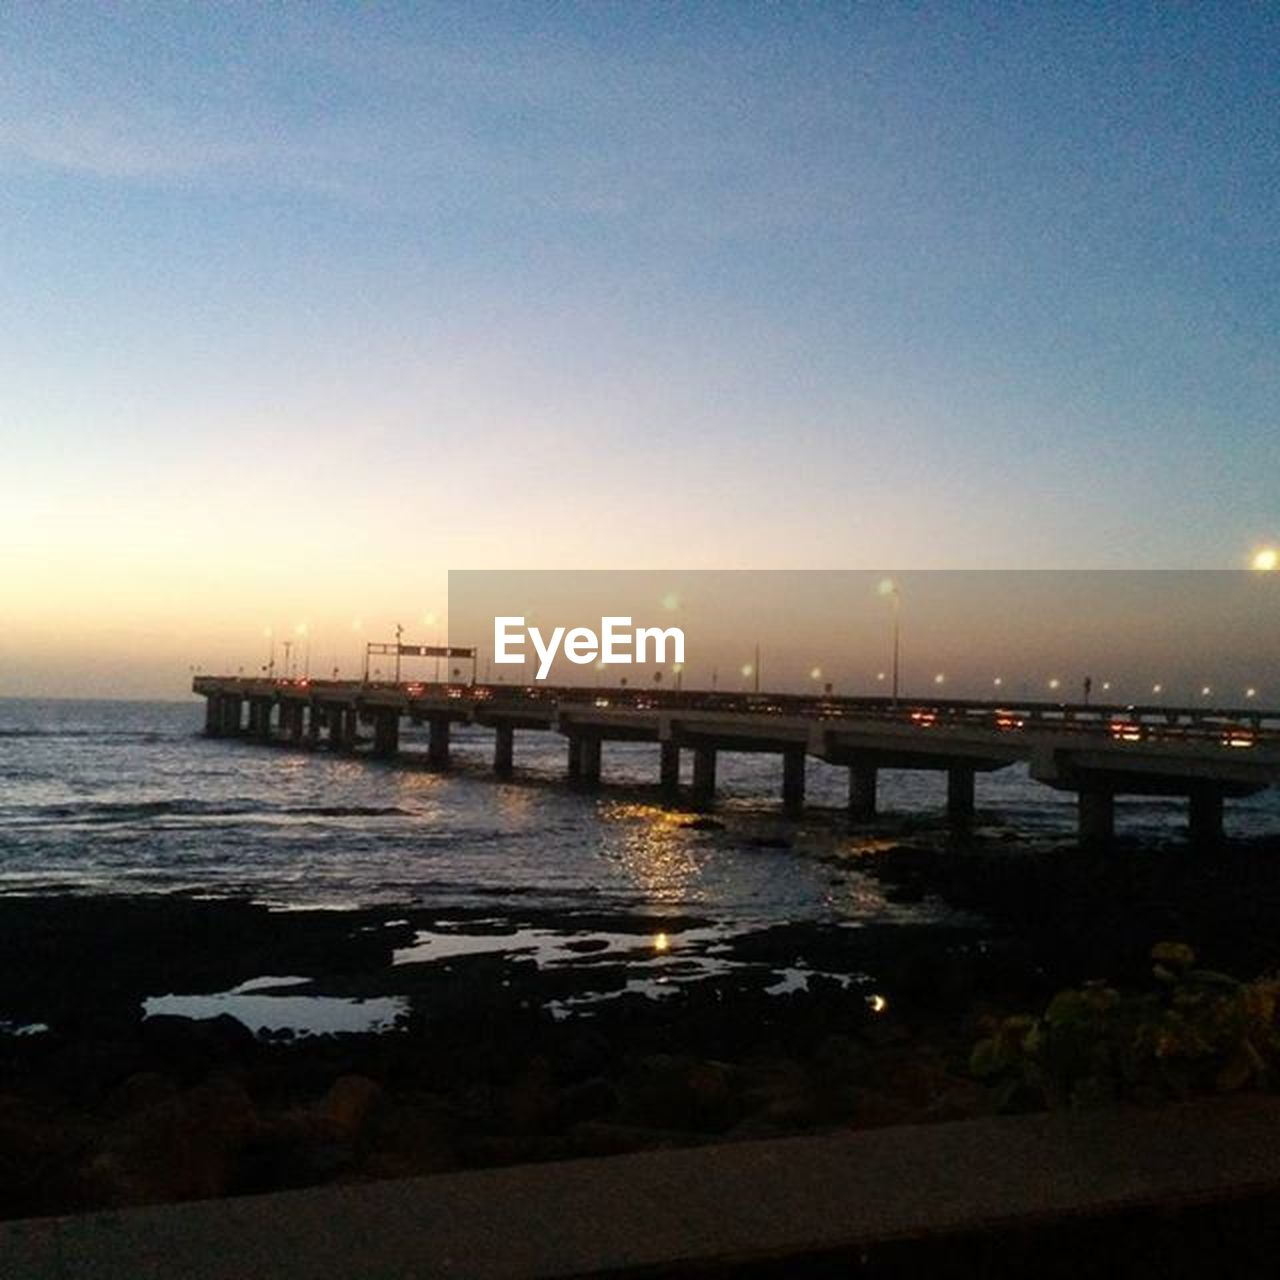 bridge - man made structure, sea, sunset, transportation, built structure, water, architecture, connection, no people, dusk, outdoors, sky, city, bridge, travel destinations, illuminated, night, nature, clear sky, nautical vessel, horizon over water, cityscape